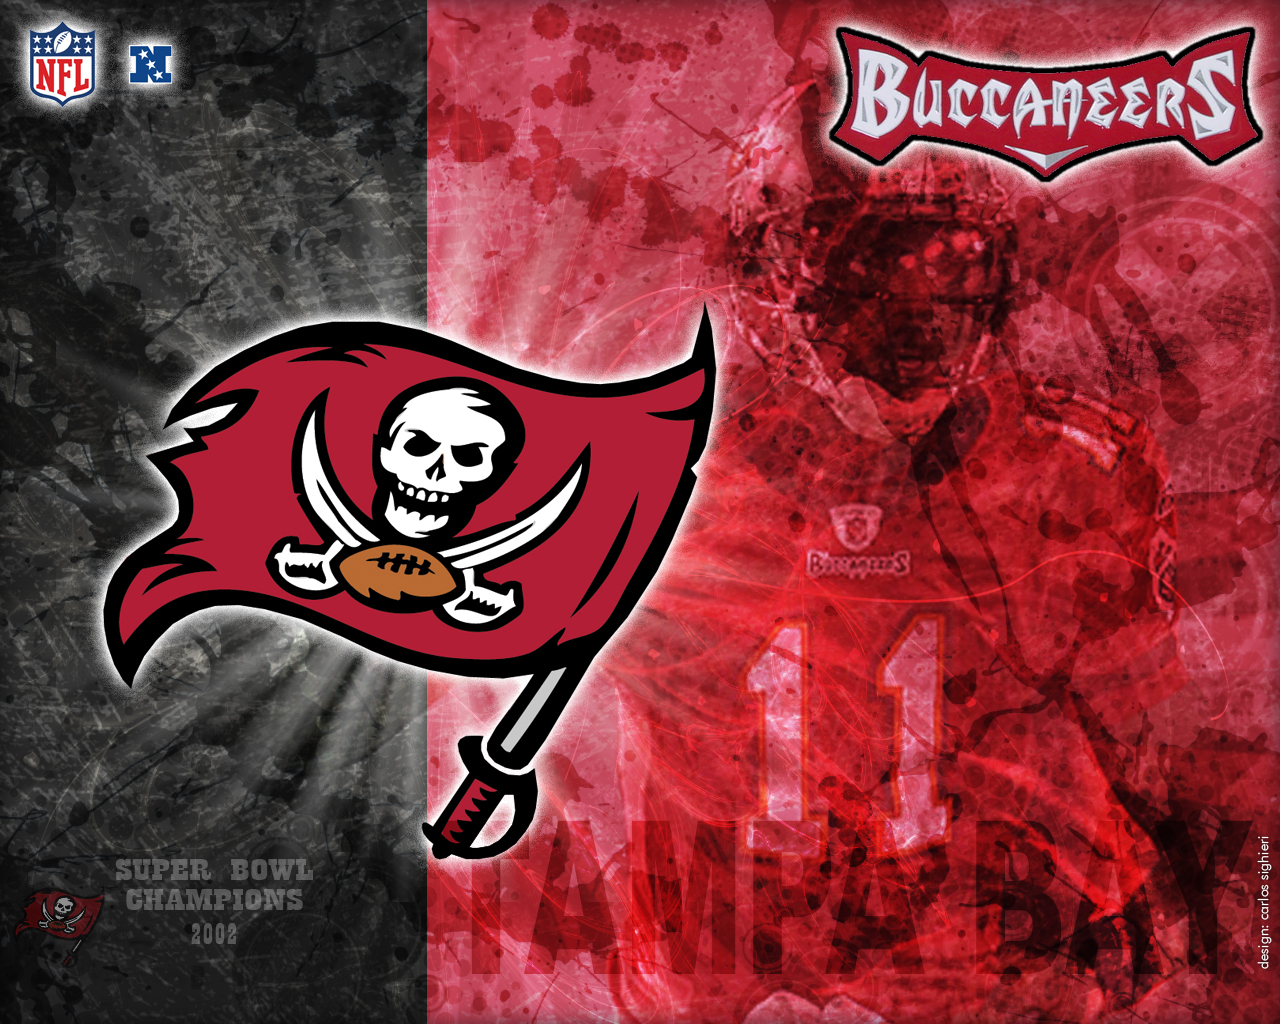 The Best Buccaneers Wallpapers